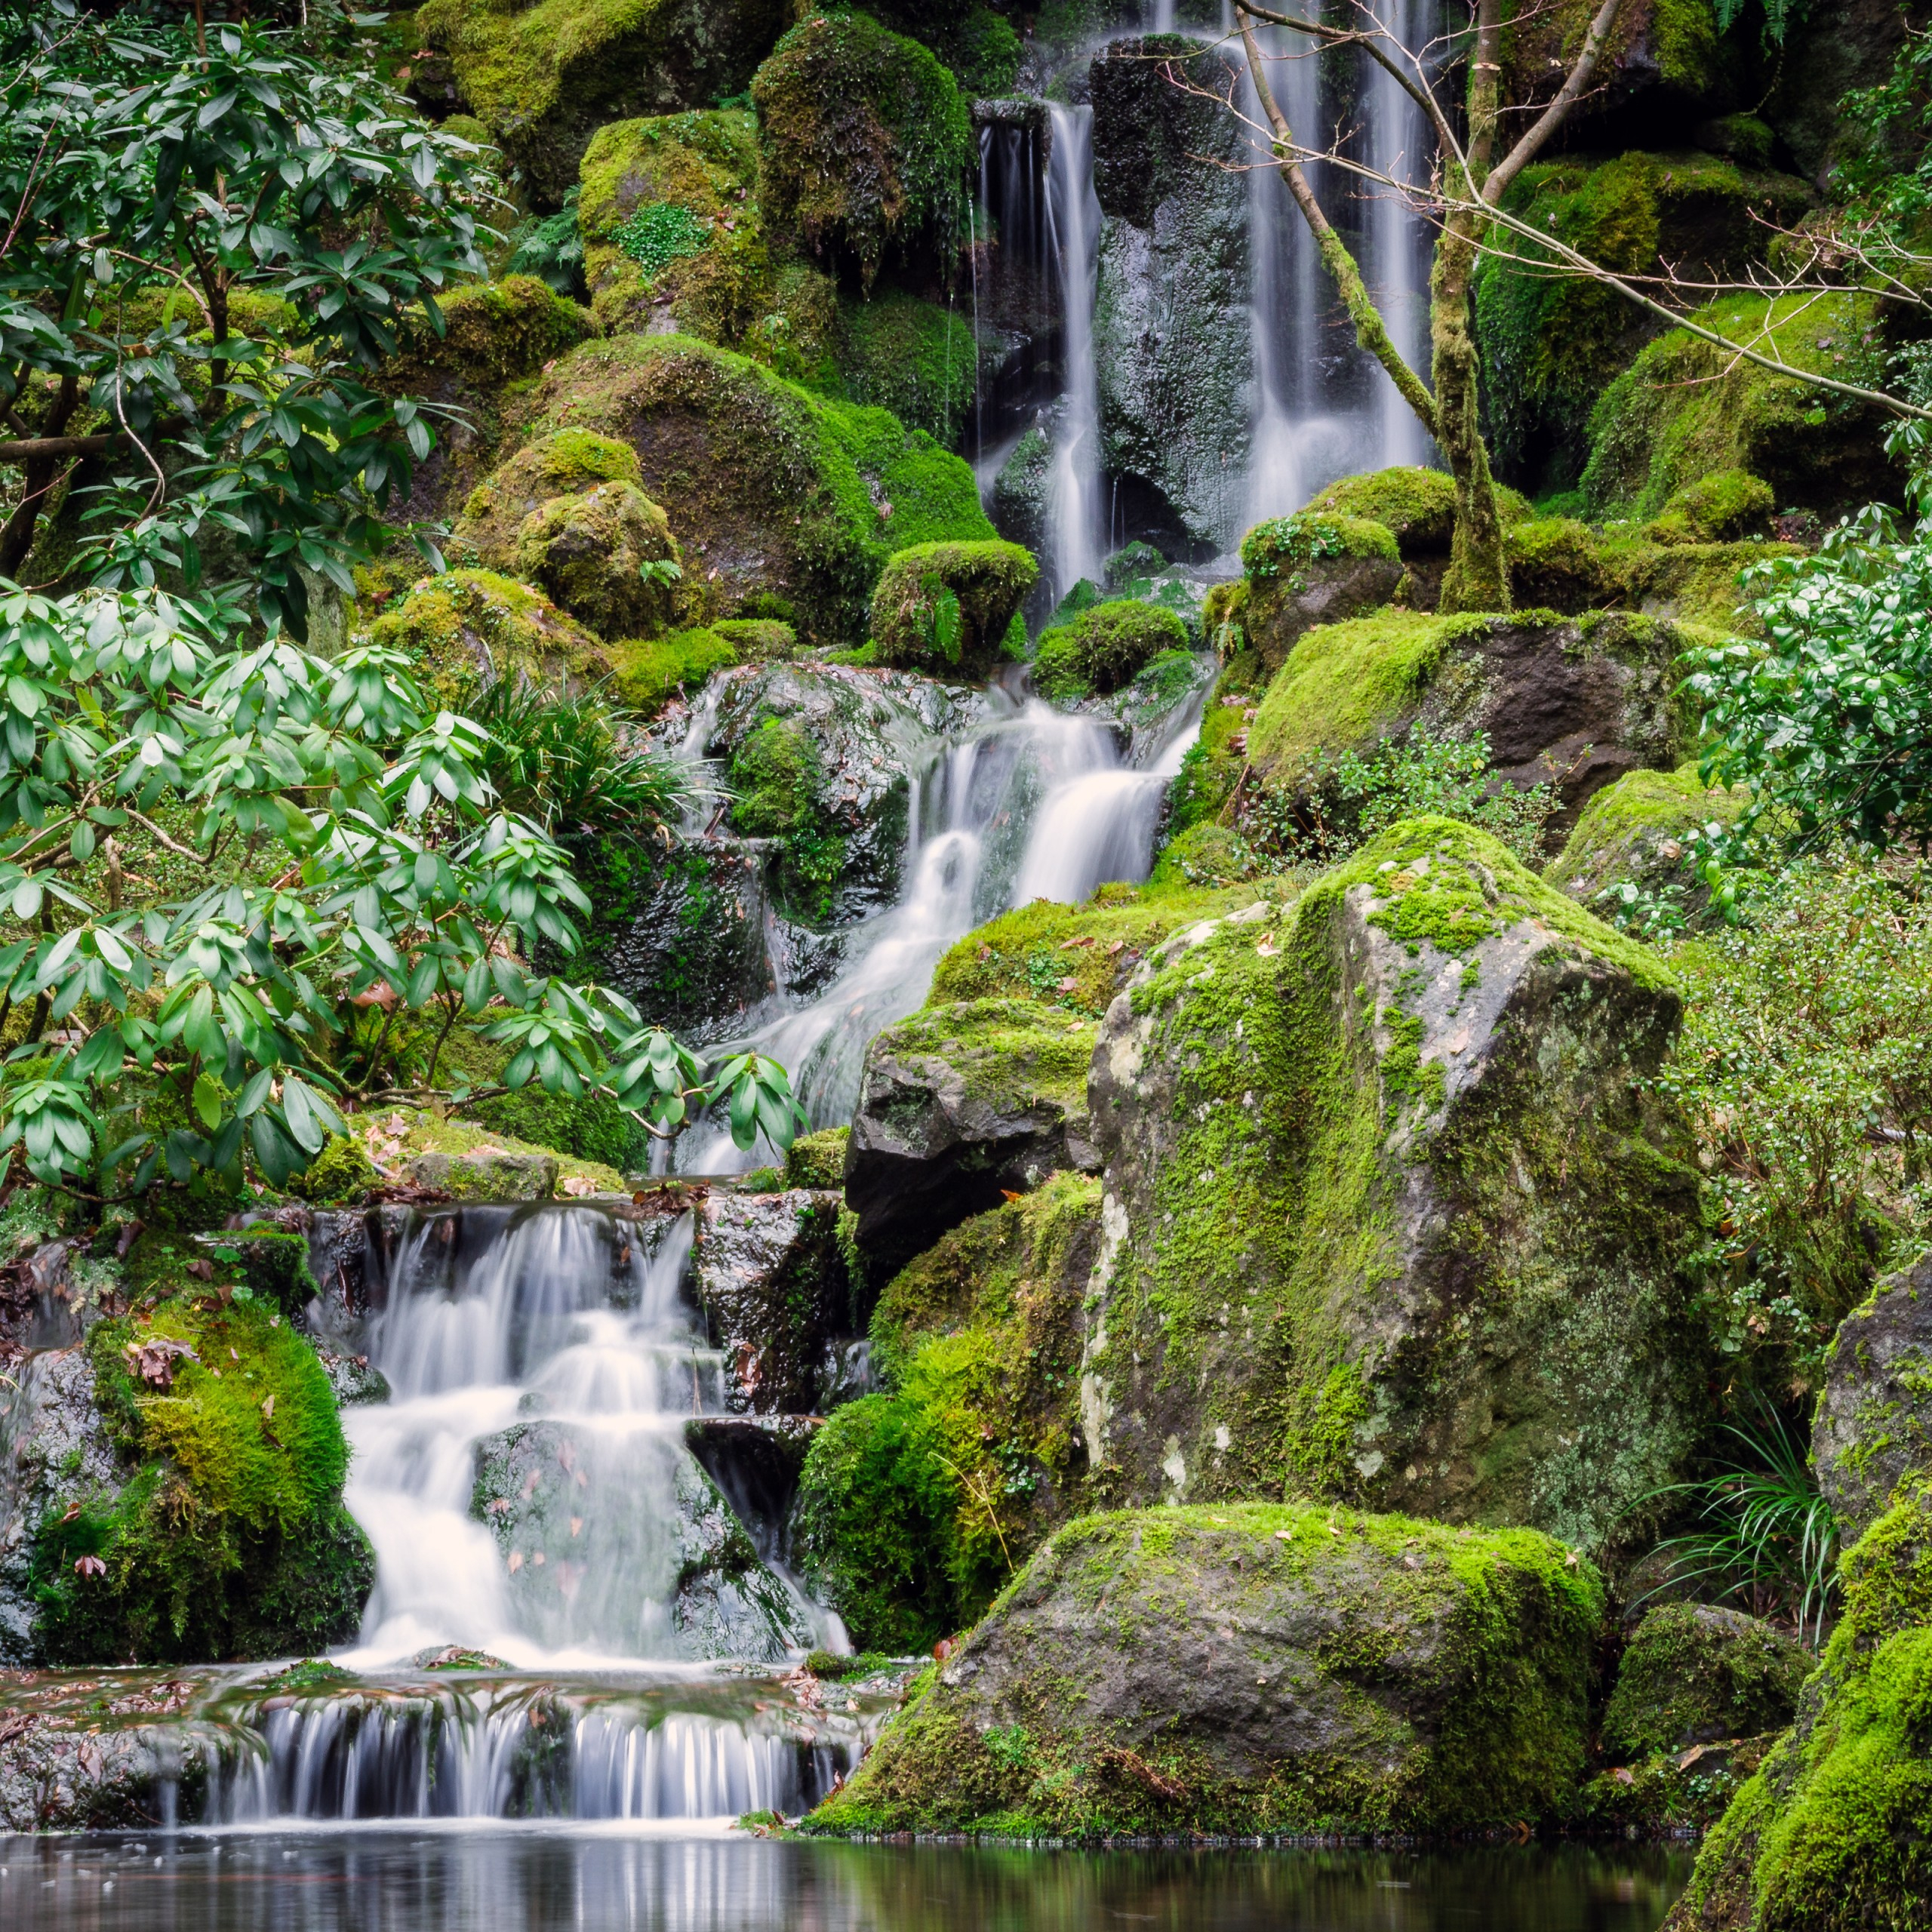 portland japanese gardens waterfalls green moss rocks 2560x2560 3845